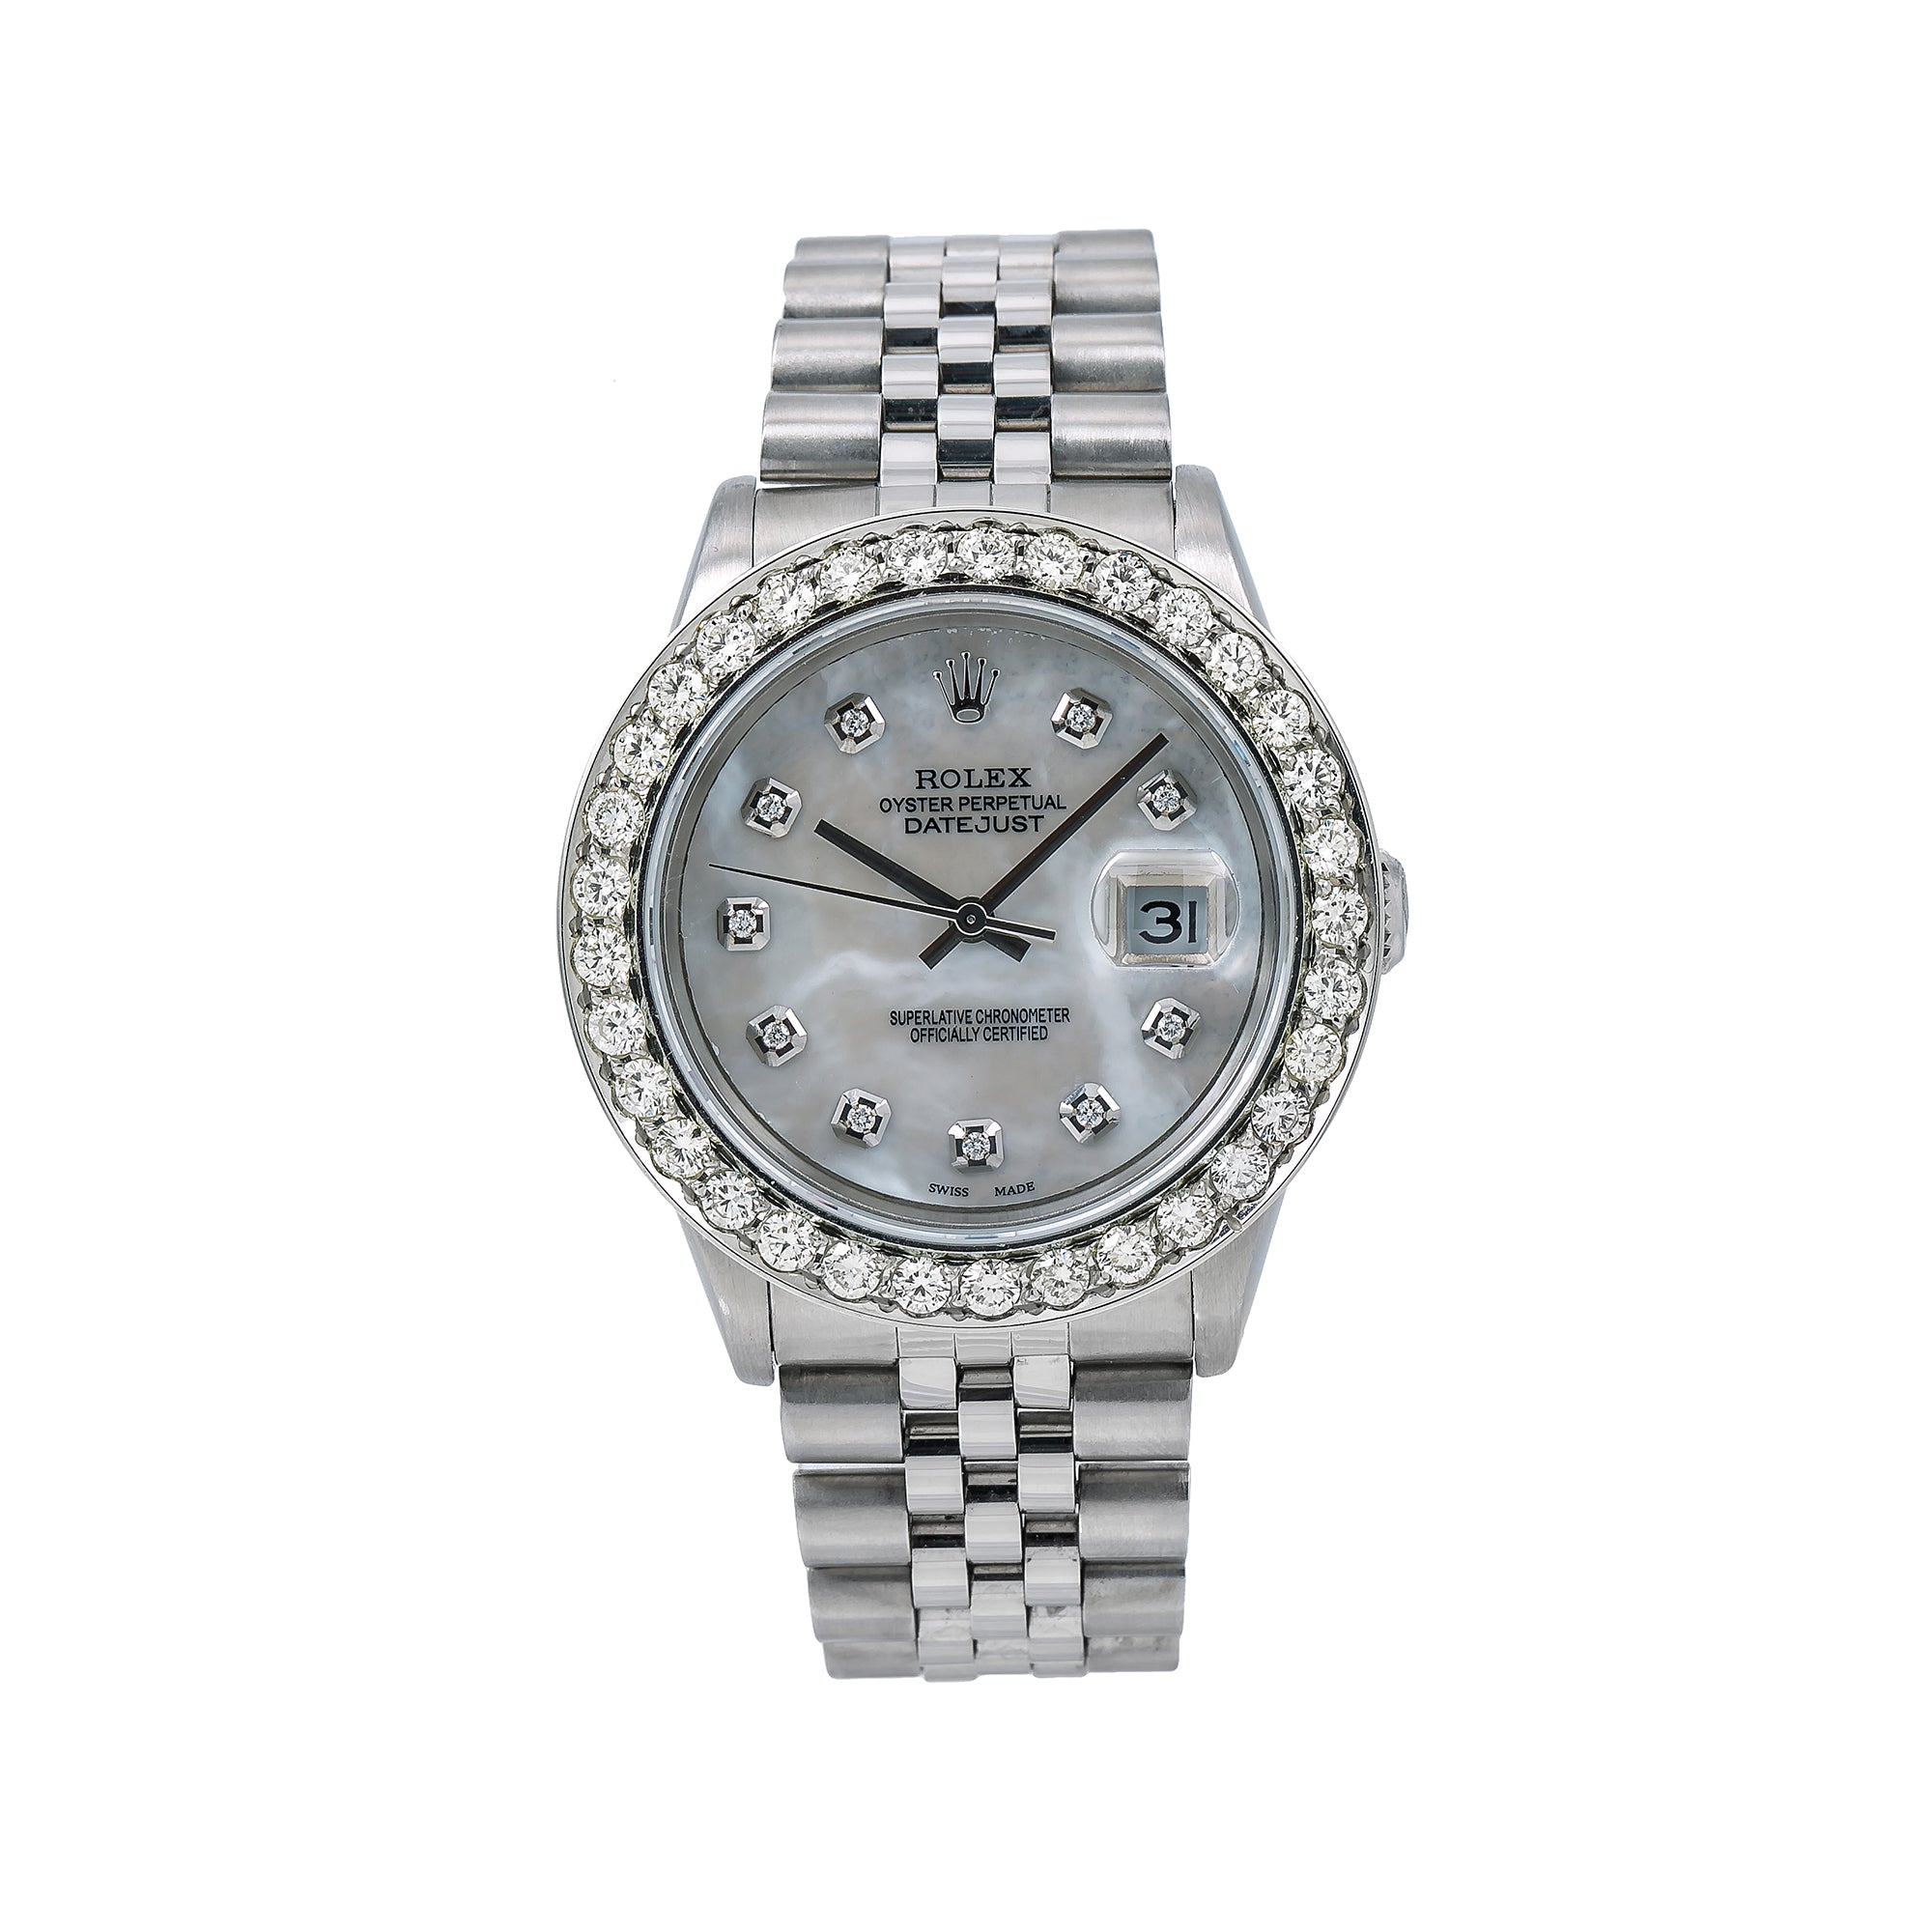 Rolex Datejust 16014 36mm Silver MOP Dial With Stainless Steel Jubilee Bracelet